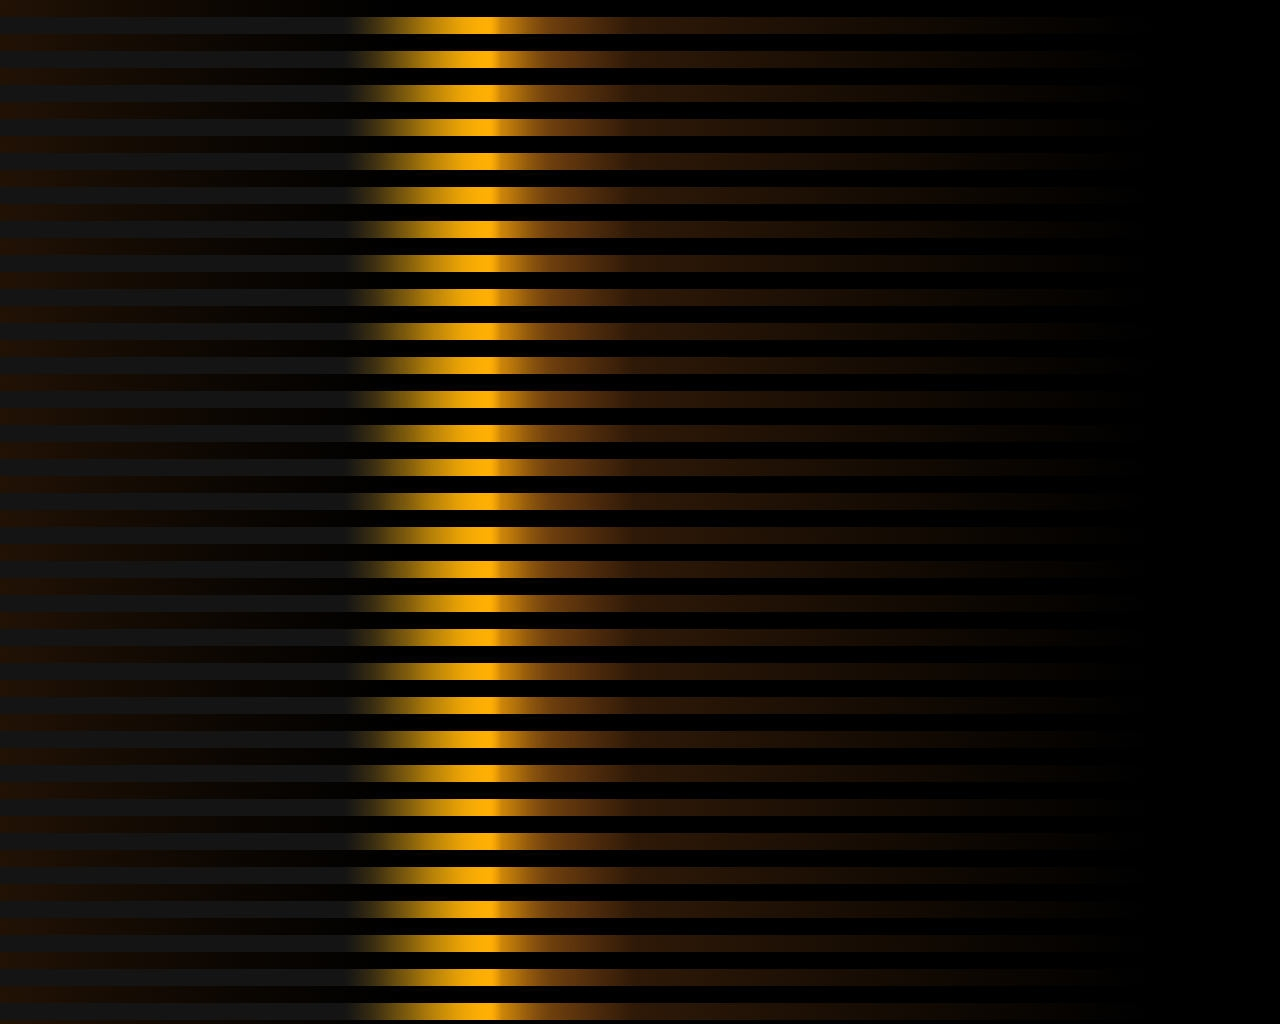 black and gold brights backgrounds #5113